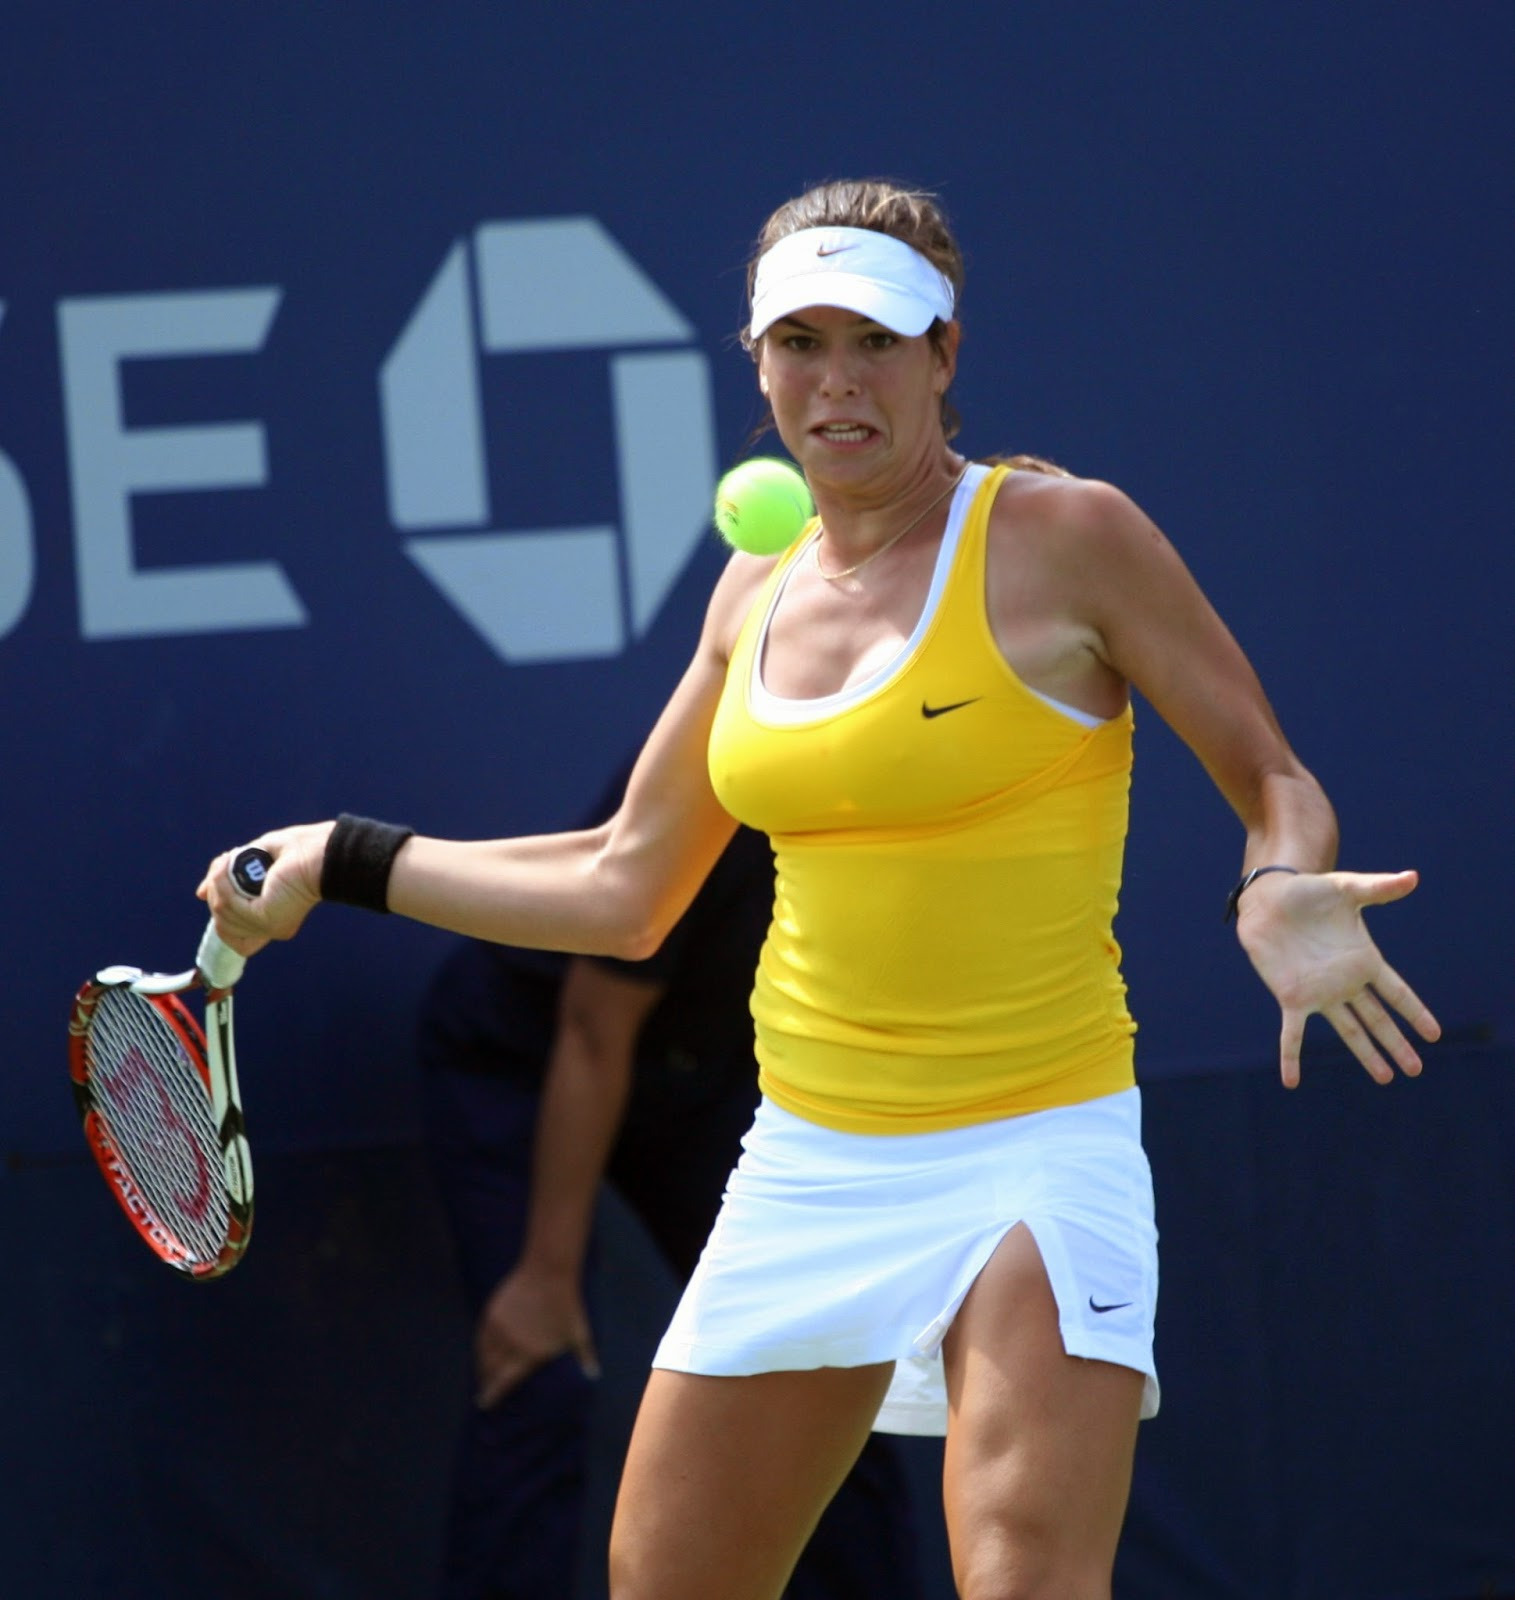 ajla tomljanovic - photo #17